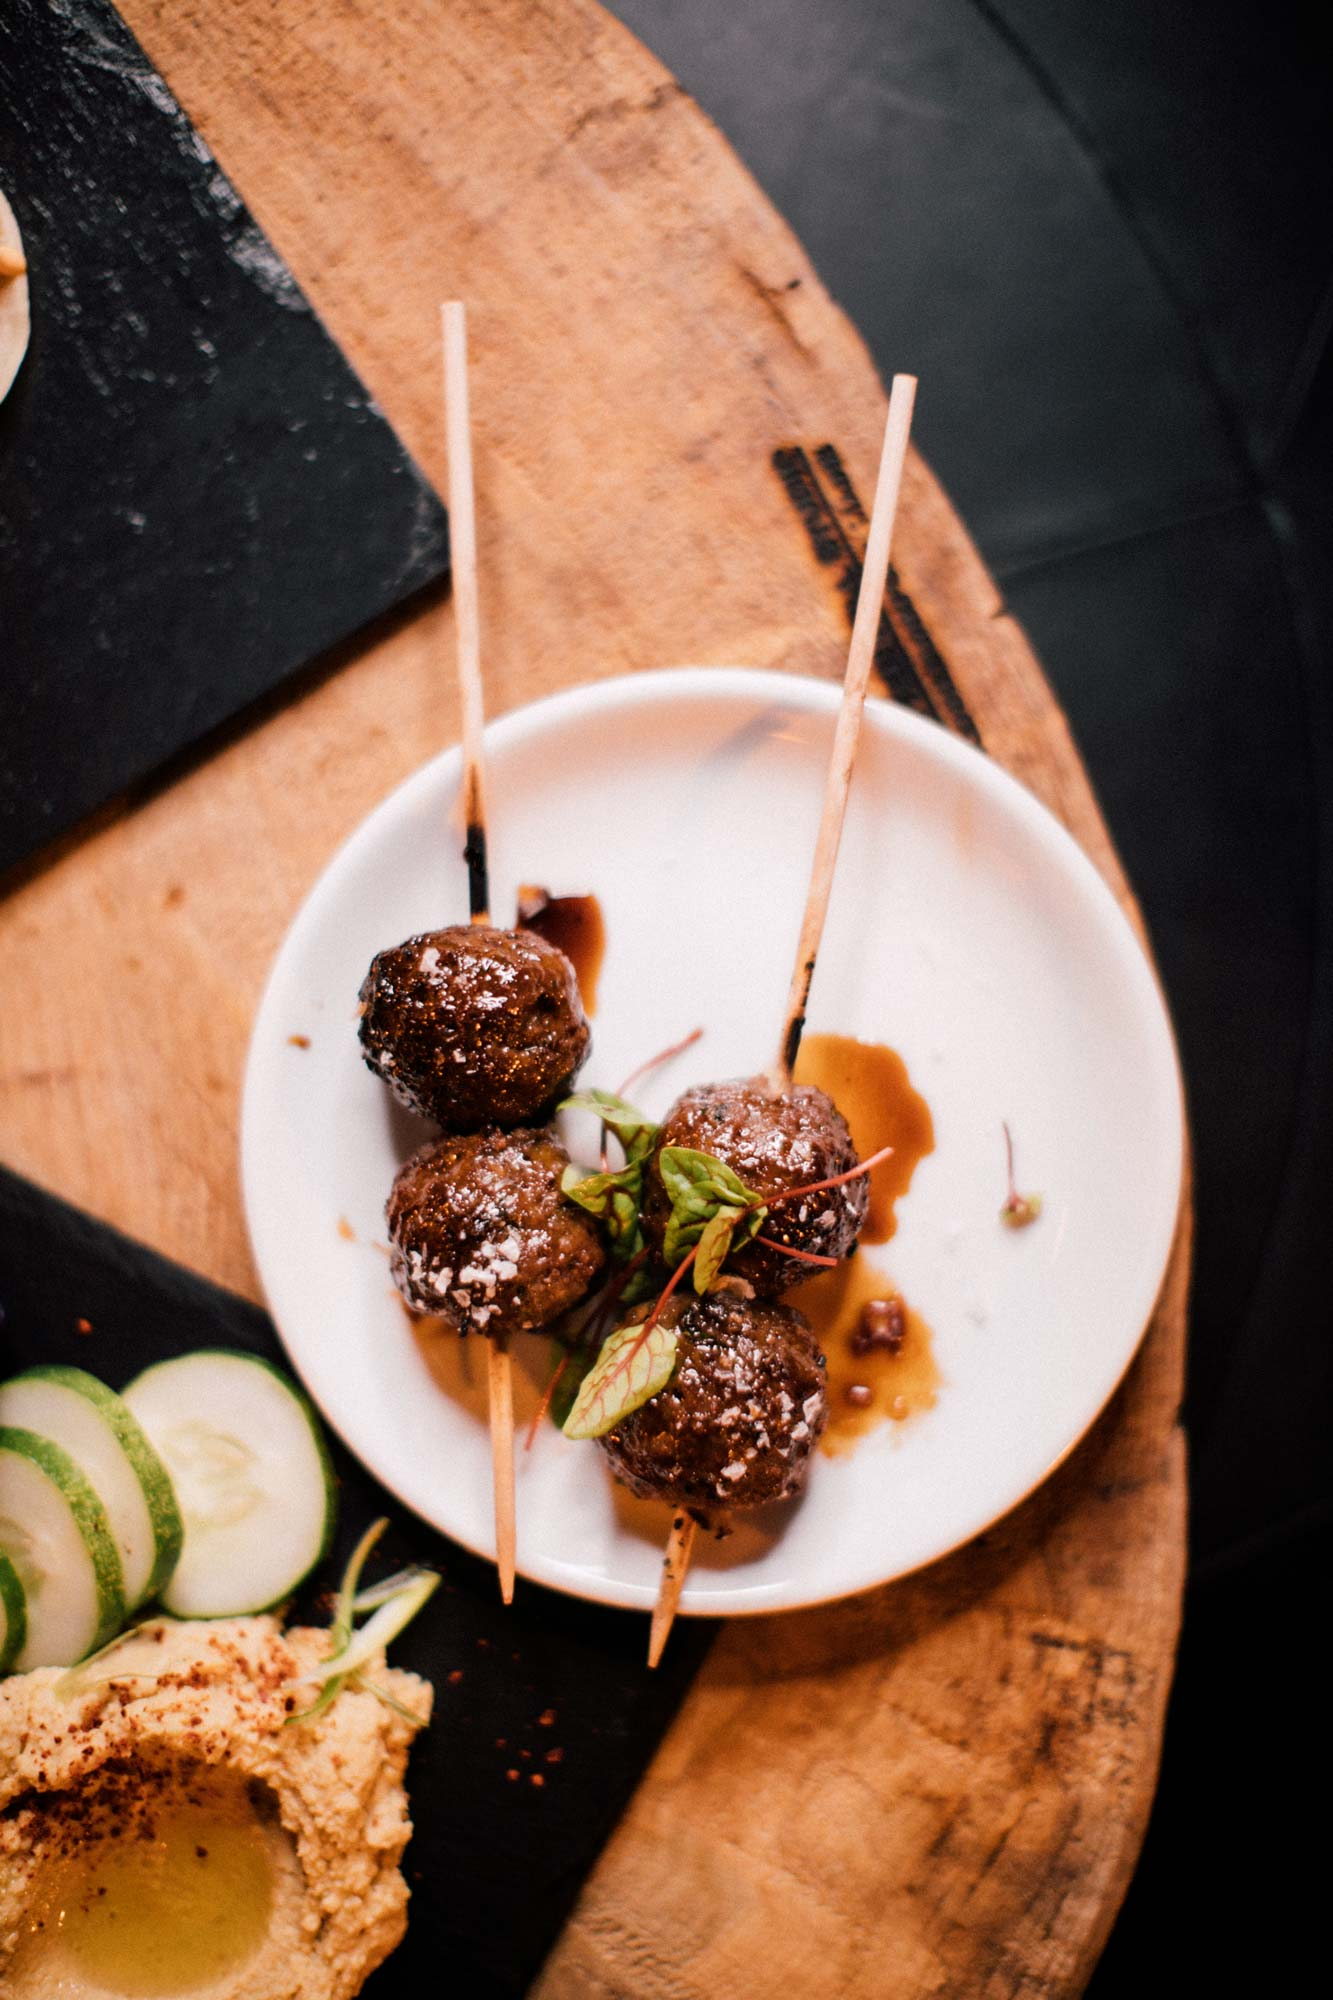 A small-plate of Beer-basted Meatball Skewers.